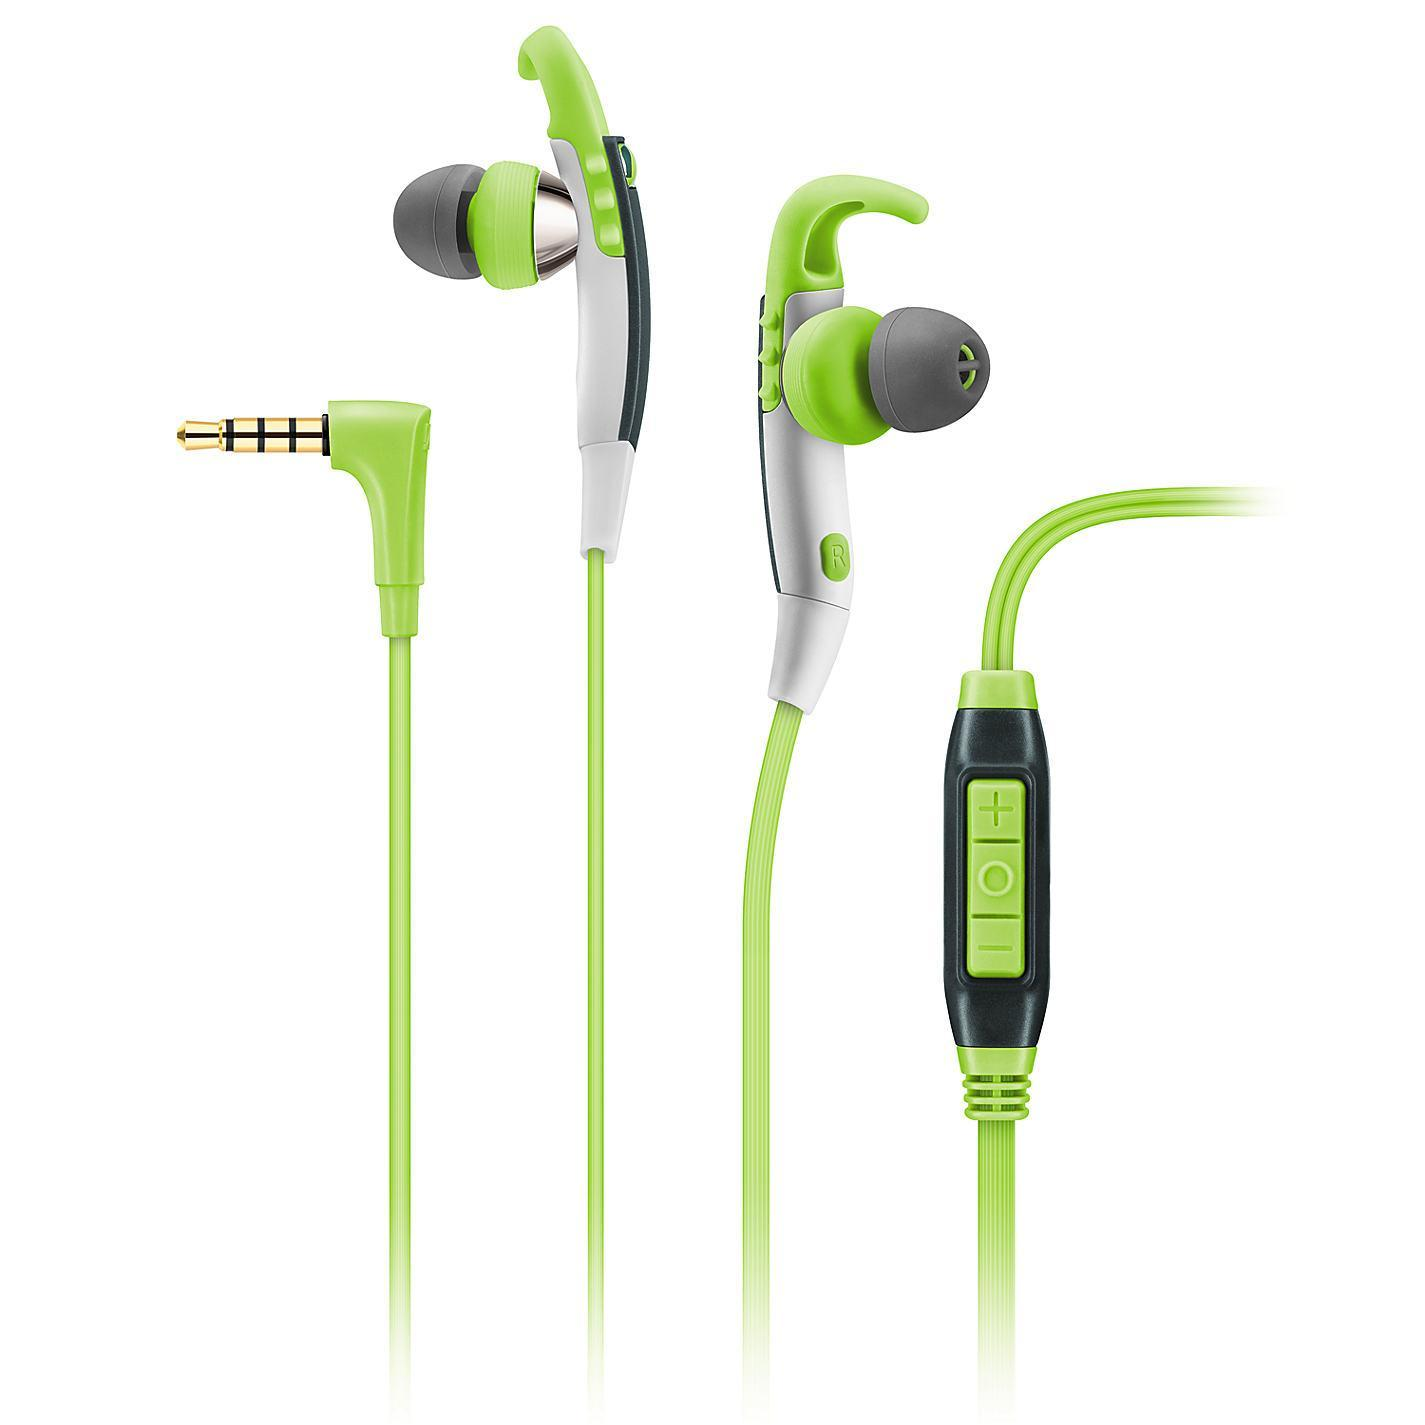 Sennheiser CX 686G Sports, Green наушники506188Инновационный механизм крепления Slide-to-Fit в наушниках Sennheiser CX 686G гарантирует надежную и комфортную посадку во время занятий спортом, а высокопроизводительные драйверы, генерируя великолепное стереозвучание, подвигнут Вас на новые спортивные достижения. Легкие, но достаточно прочные наушники CX 686G способны противостоять высоким нагрузкам, а благодаря особой конструкции ушных амбушюров, окружающий шум не будет отвлекать Вас от тренировки